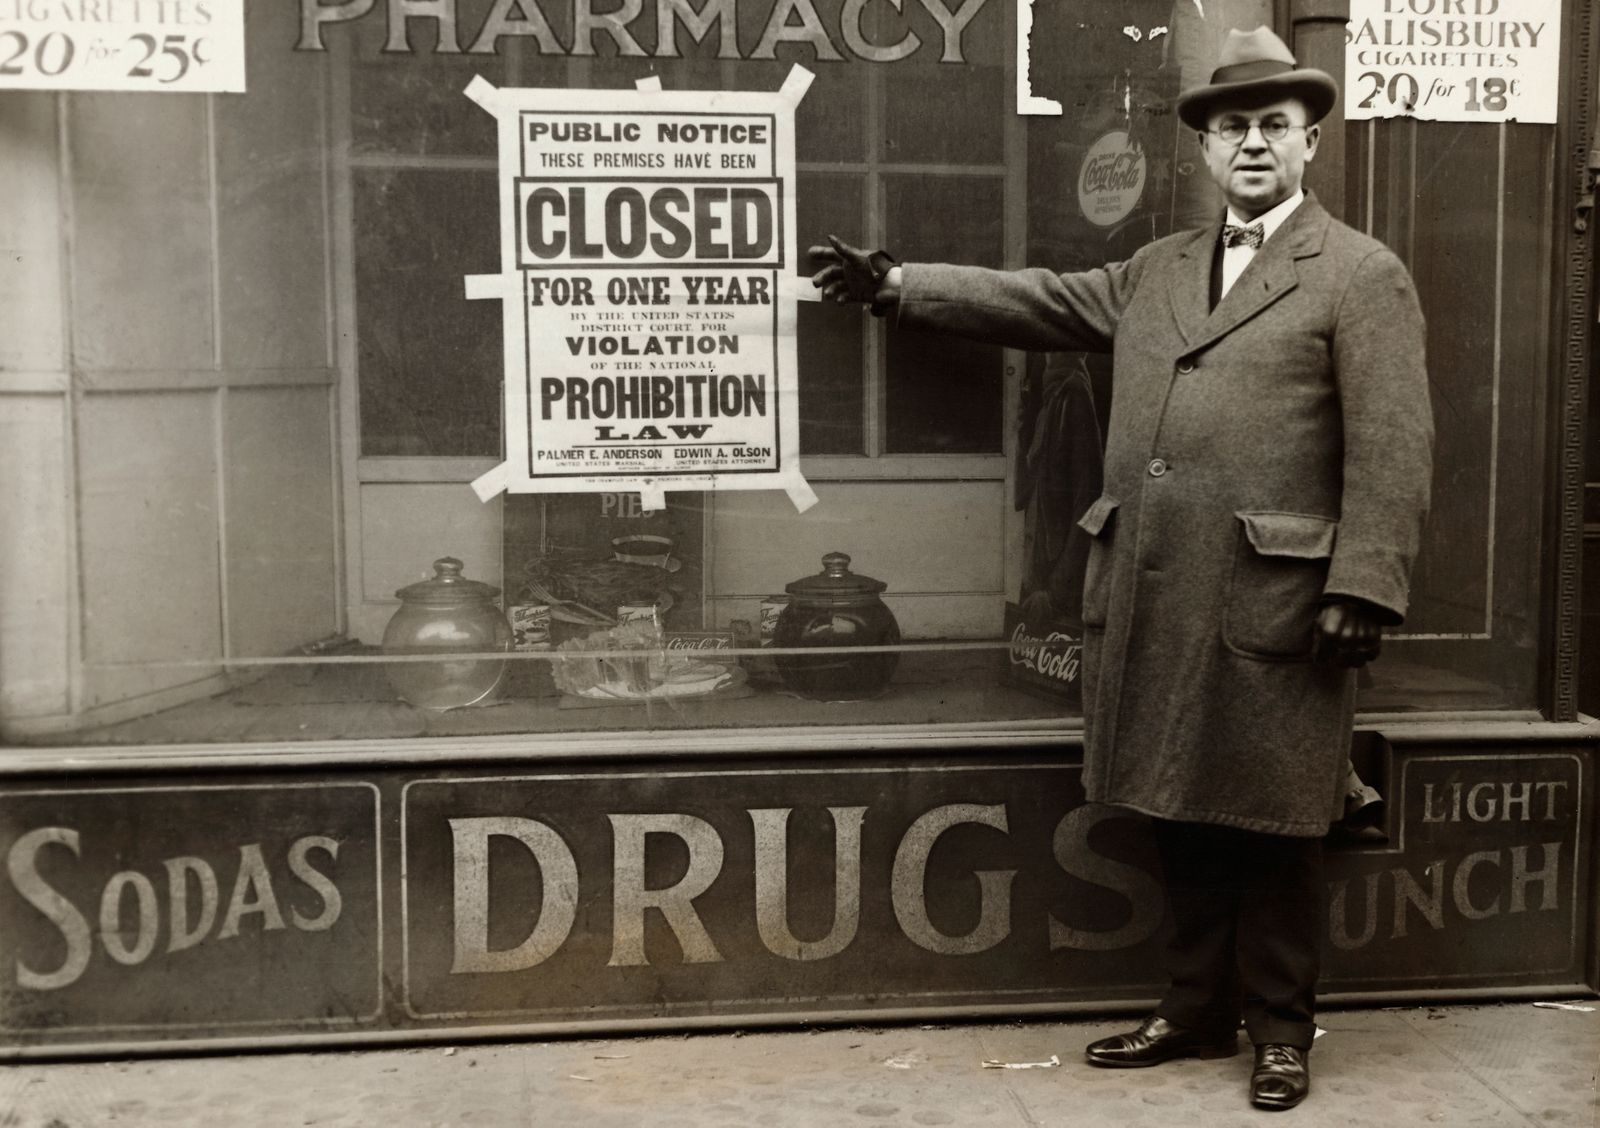 Prohibition - Man Points to Prohibition Sign